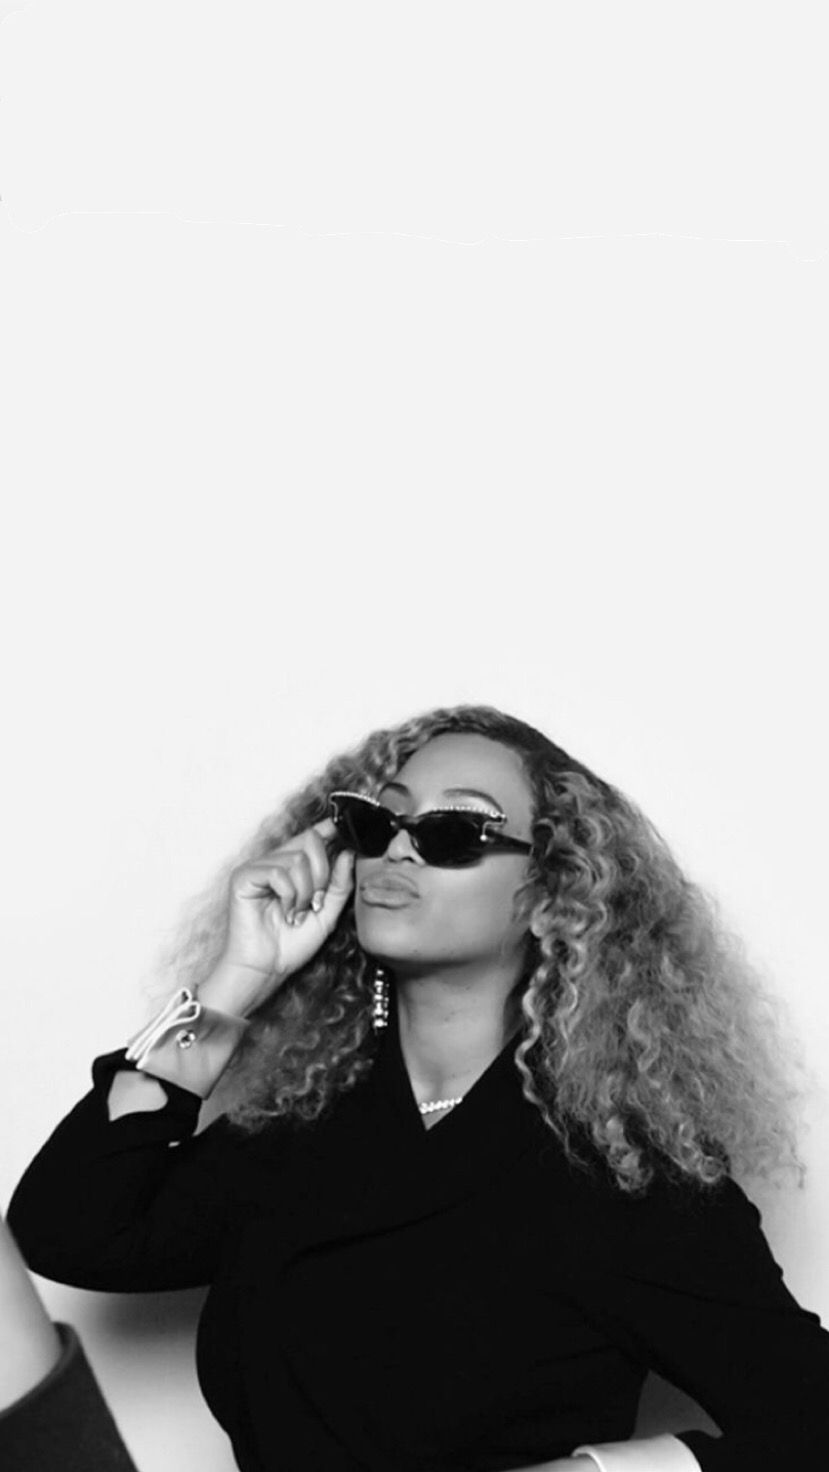 Beyonce Black Grey Wallpaper Beyonce Style Beyonce Pictures Black And White Aesthetic